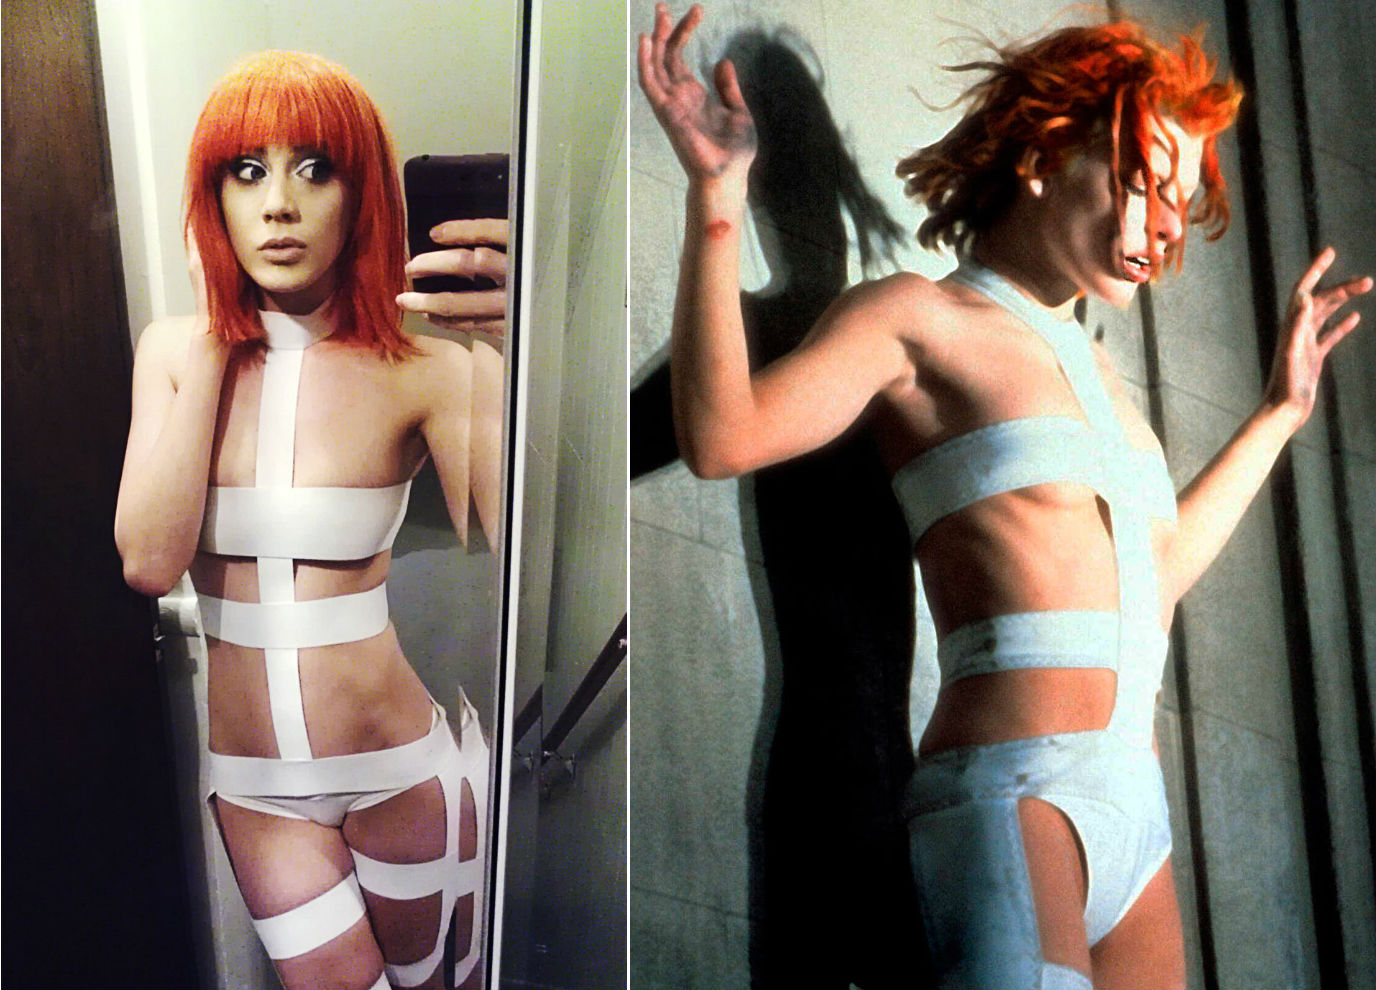 4. Leeloo from The Fifth Element